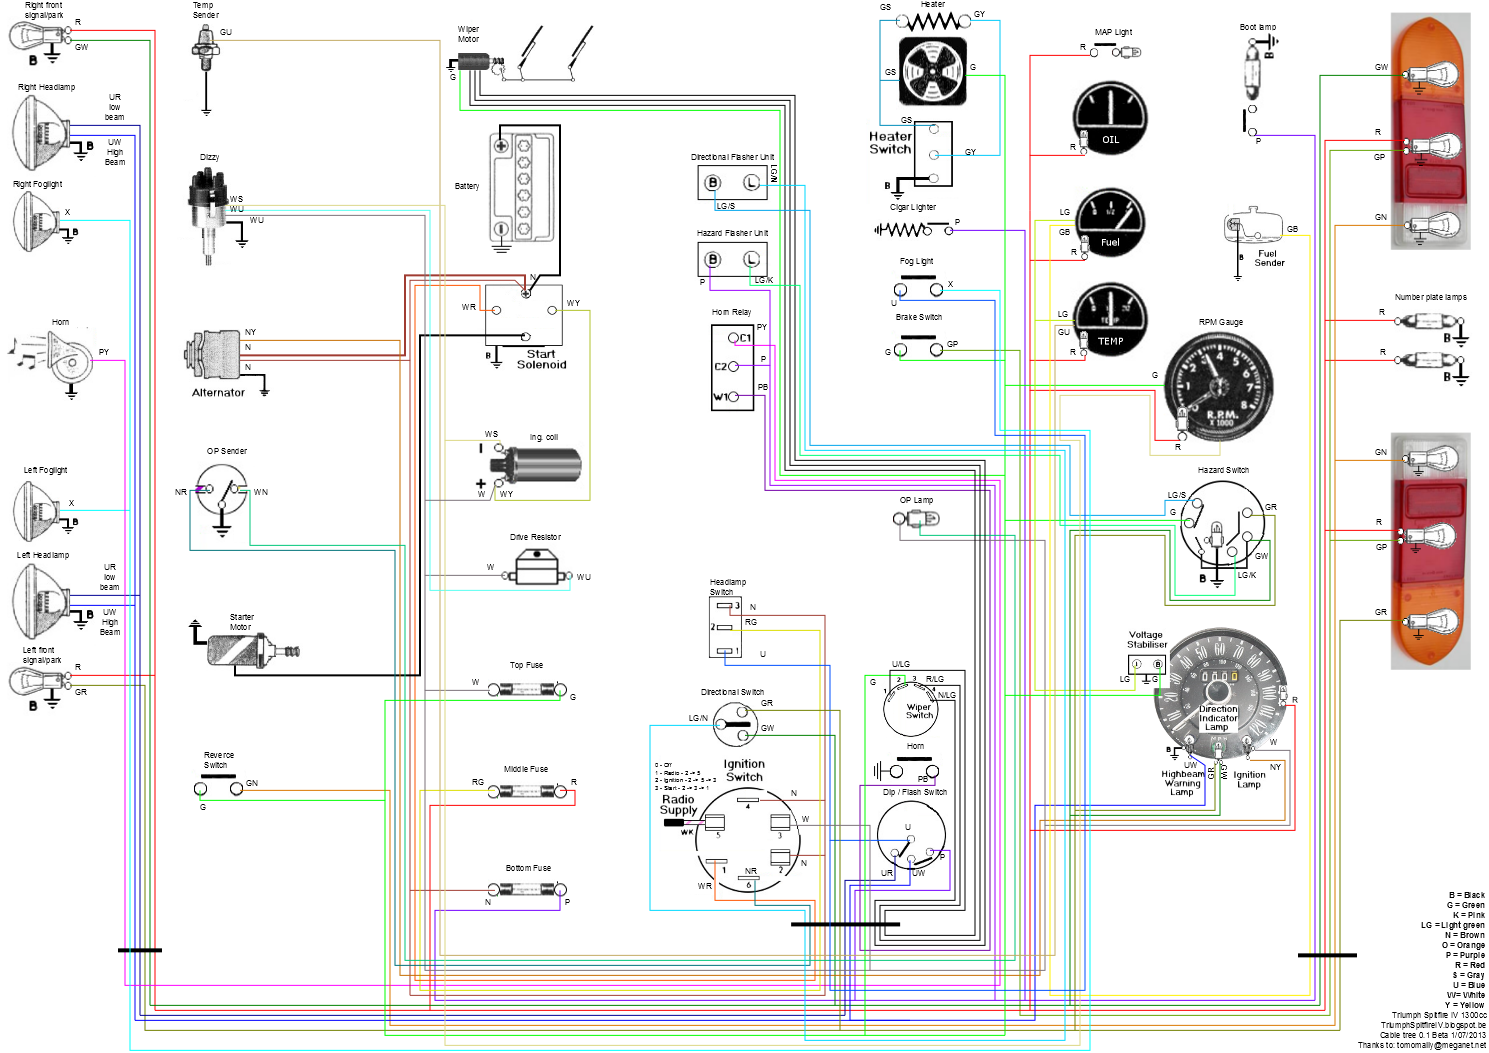 spitfire iv wiring diagram mk4 wiring diagram mk4 tdi wiring diagram \u2022 wiring diagrams j 2005 E55 AMG Performance Parts at sewacar.co